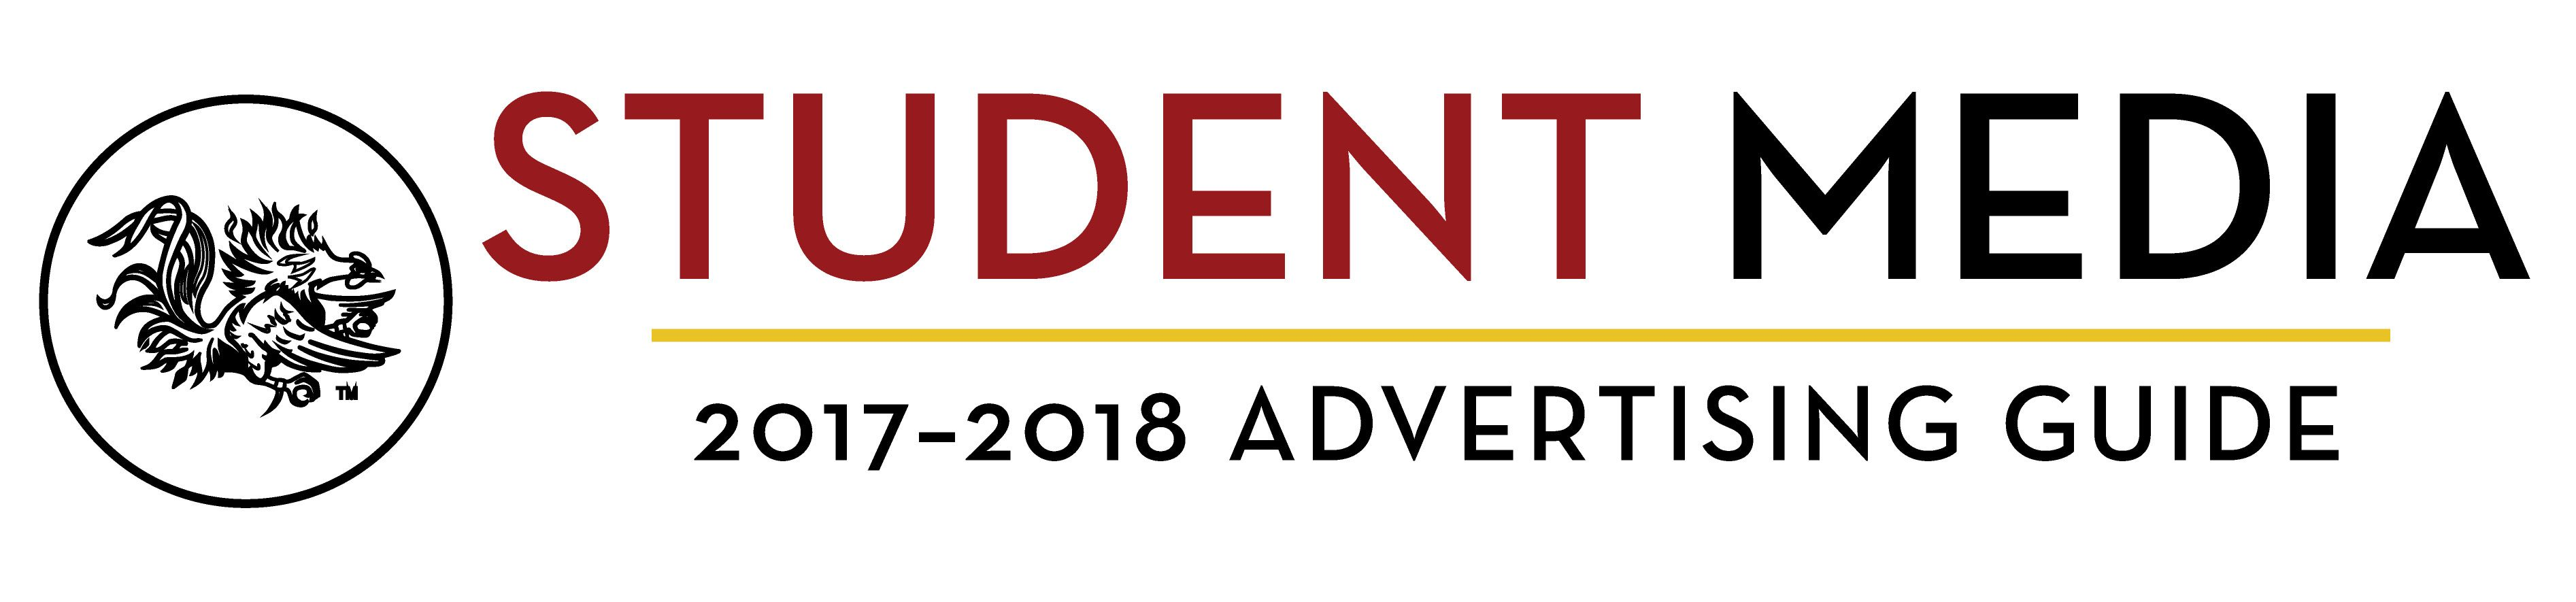 Student Media 2017-2018 Advertising Guide